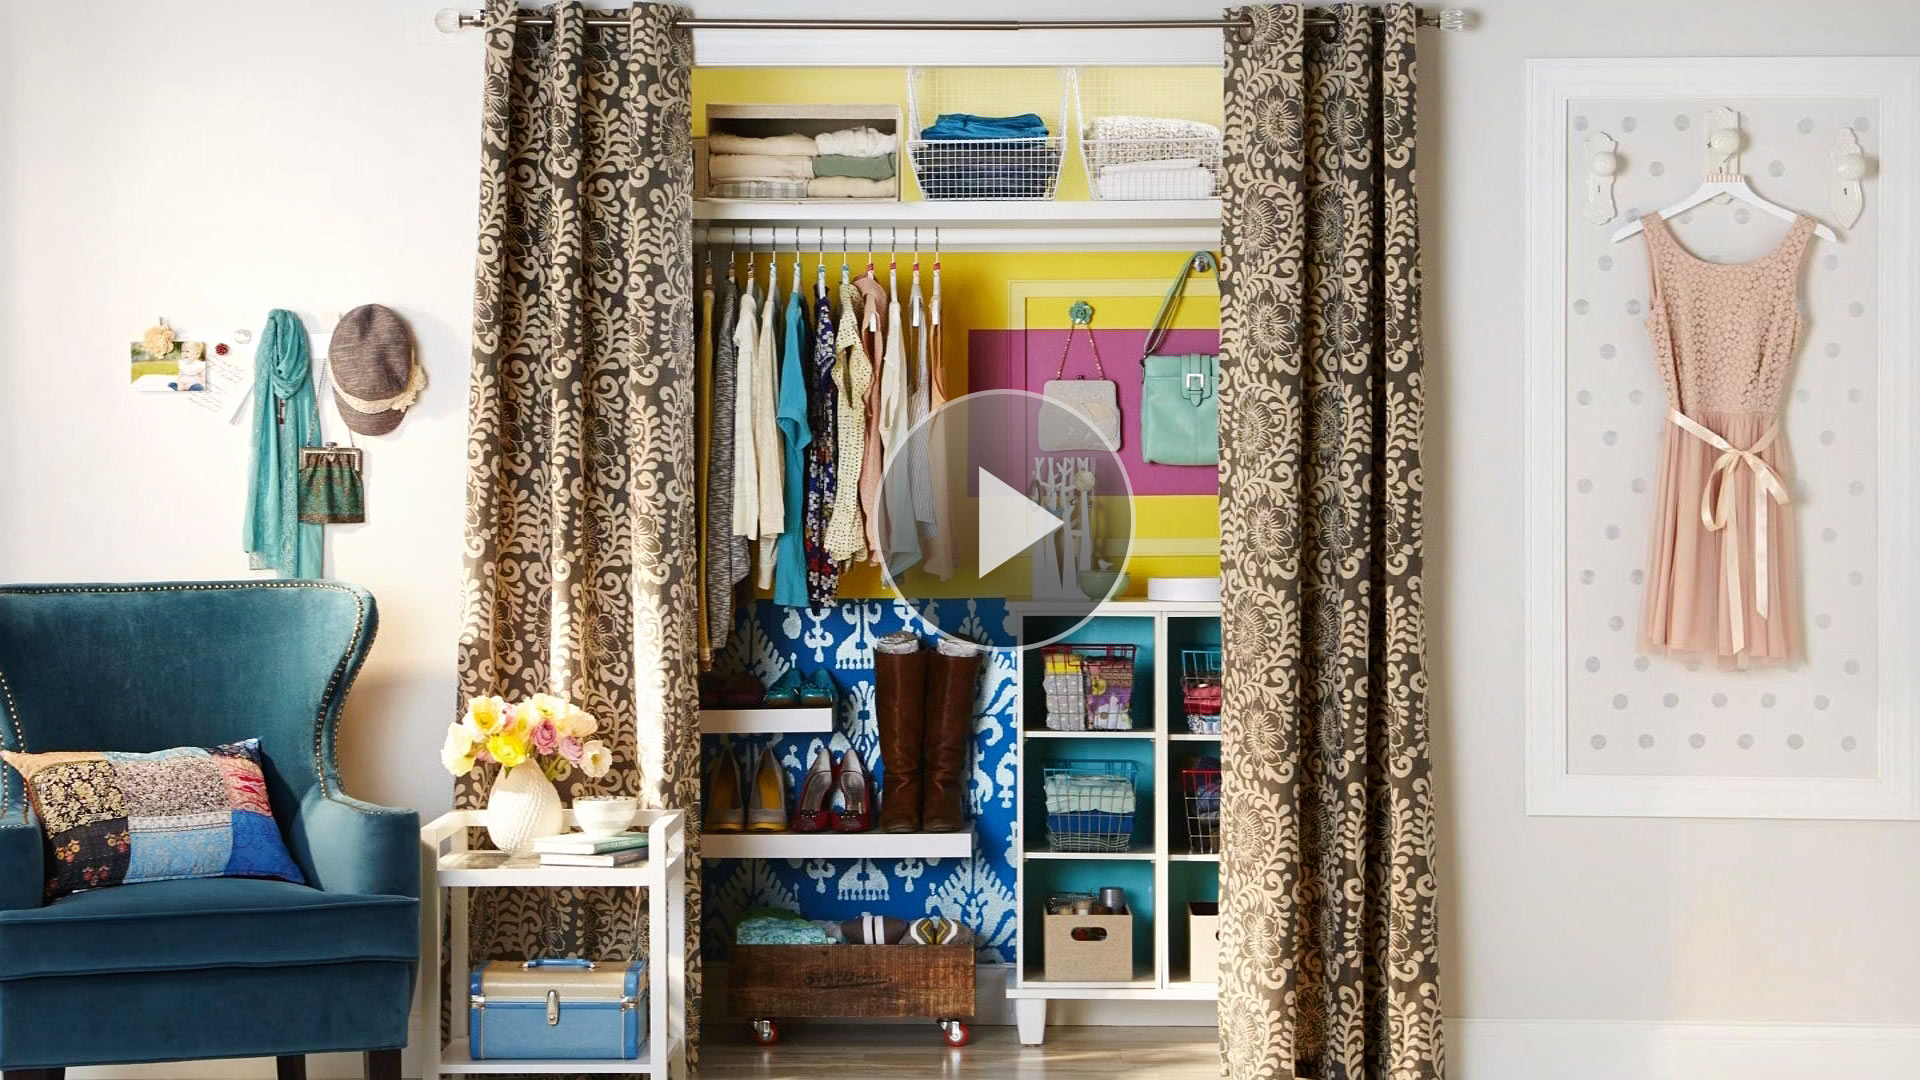 Is your clothes closet in need of an organization makeover